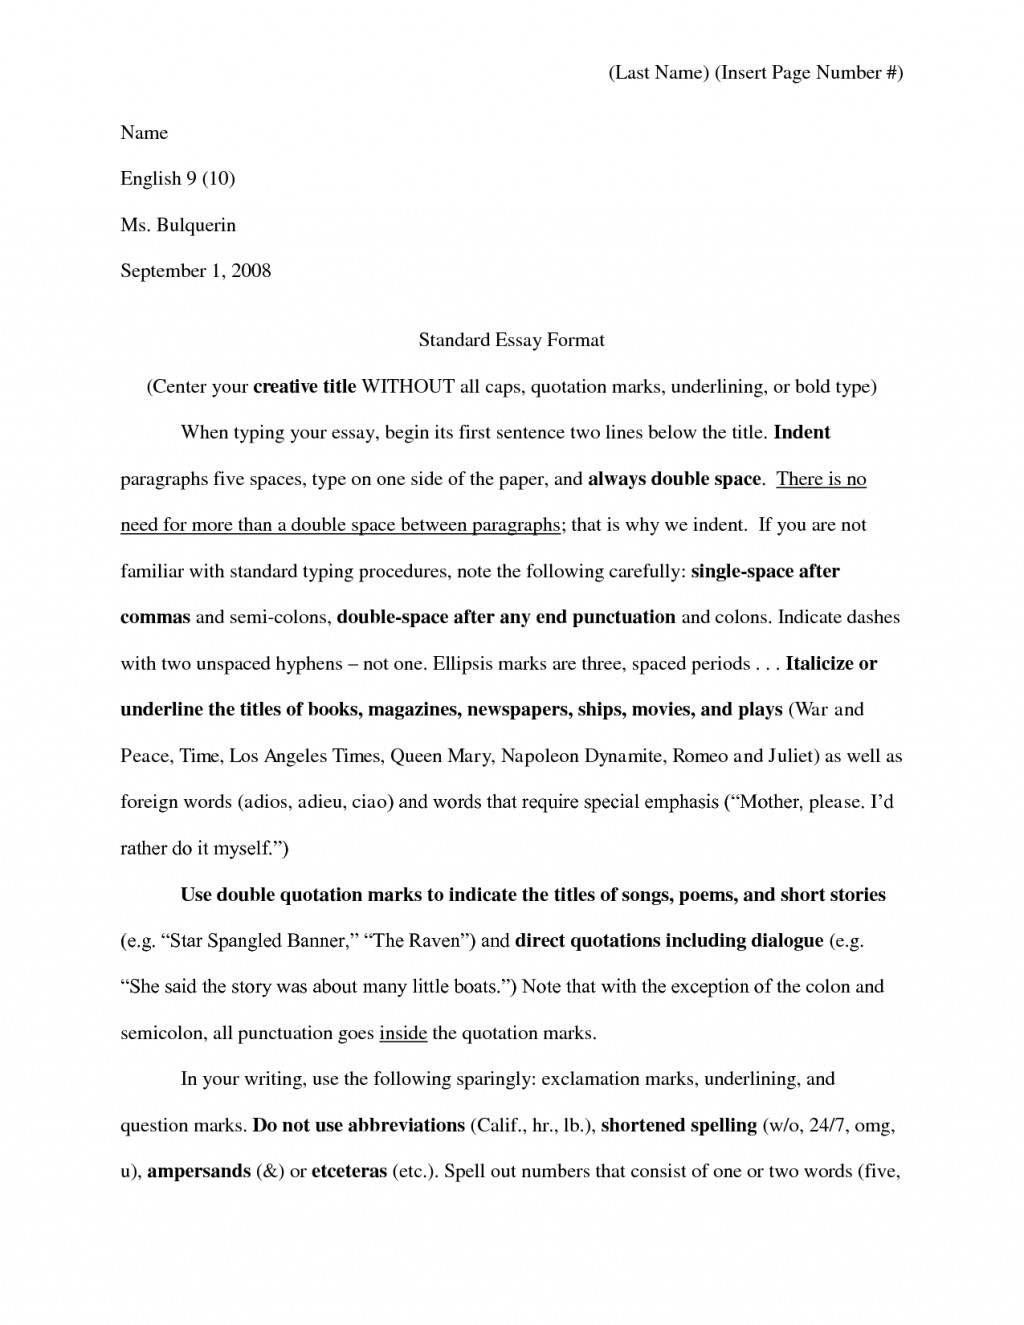 010 Proper Essay Heading Example For College Application Writing Awesome Mla Large